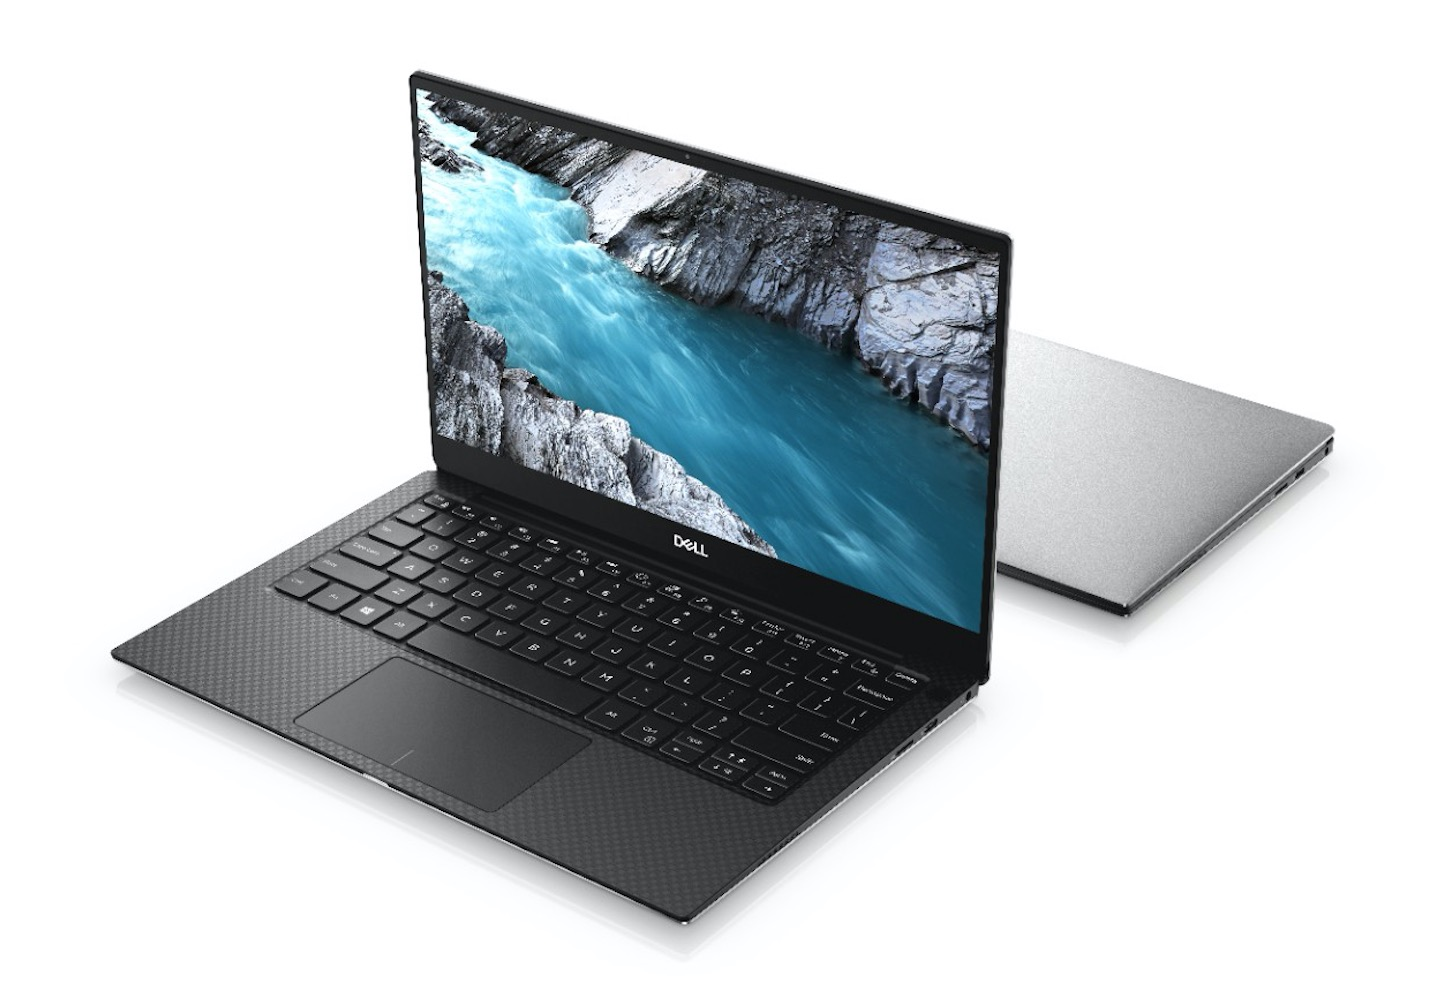 Register for StartupNation's Live Webinar with Dell Technologies, Be Entered to Win a Dell XPS 13 Laptop